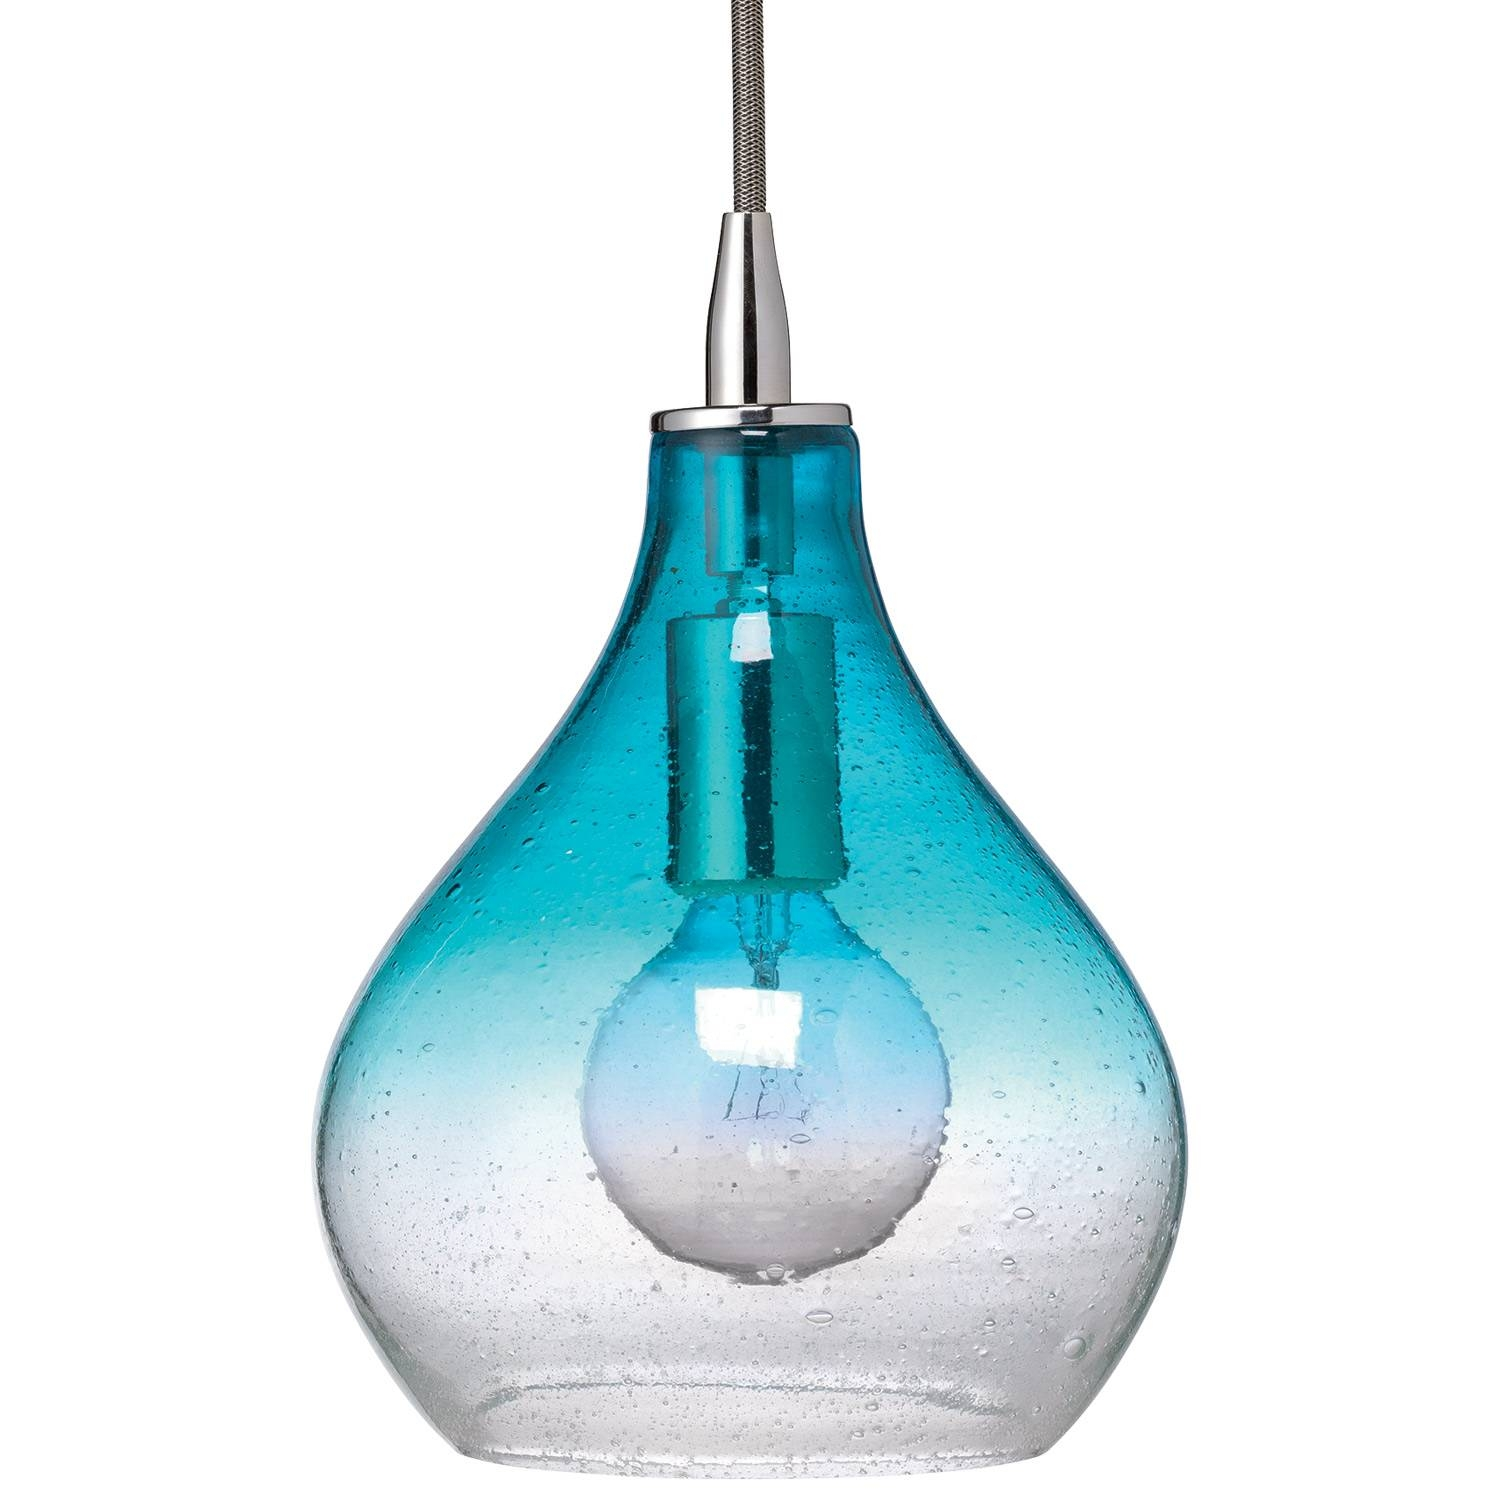 Aqua Pendant Lights - Baby-Exit in Aqua Pendant Lights (Image 1 of 15)